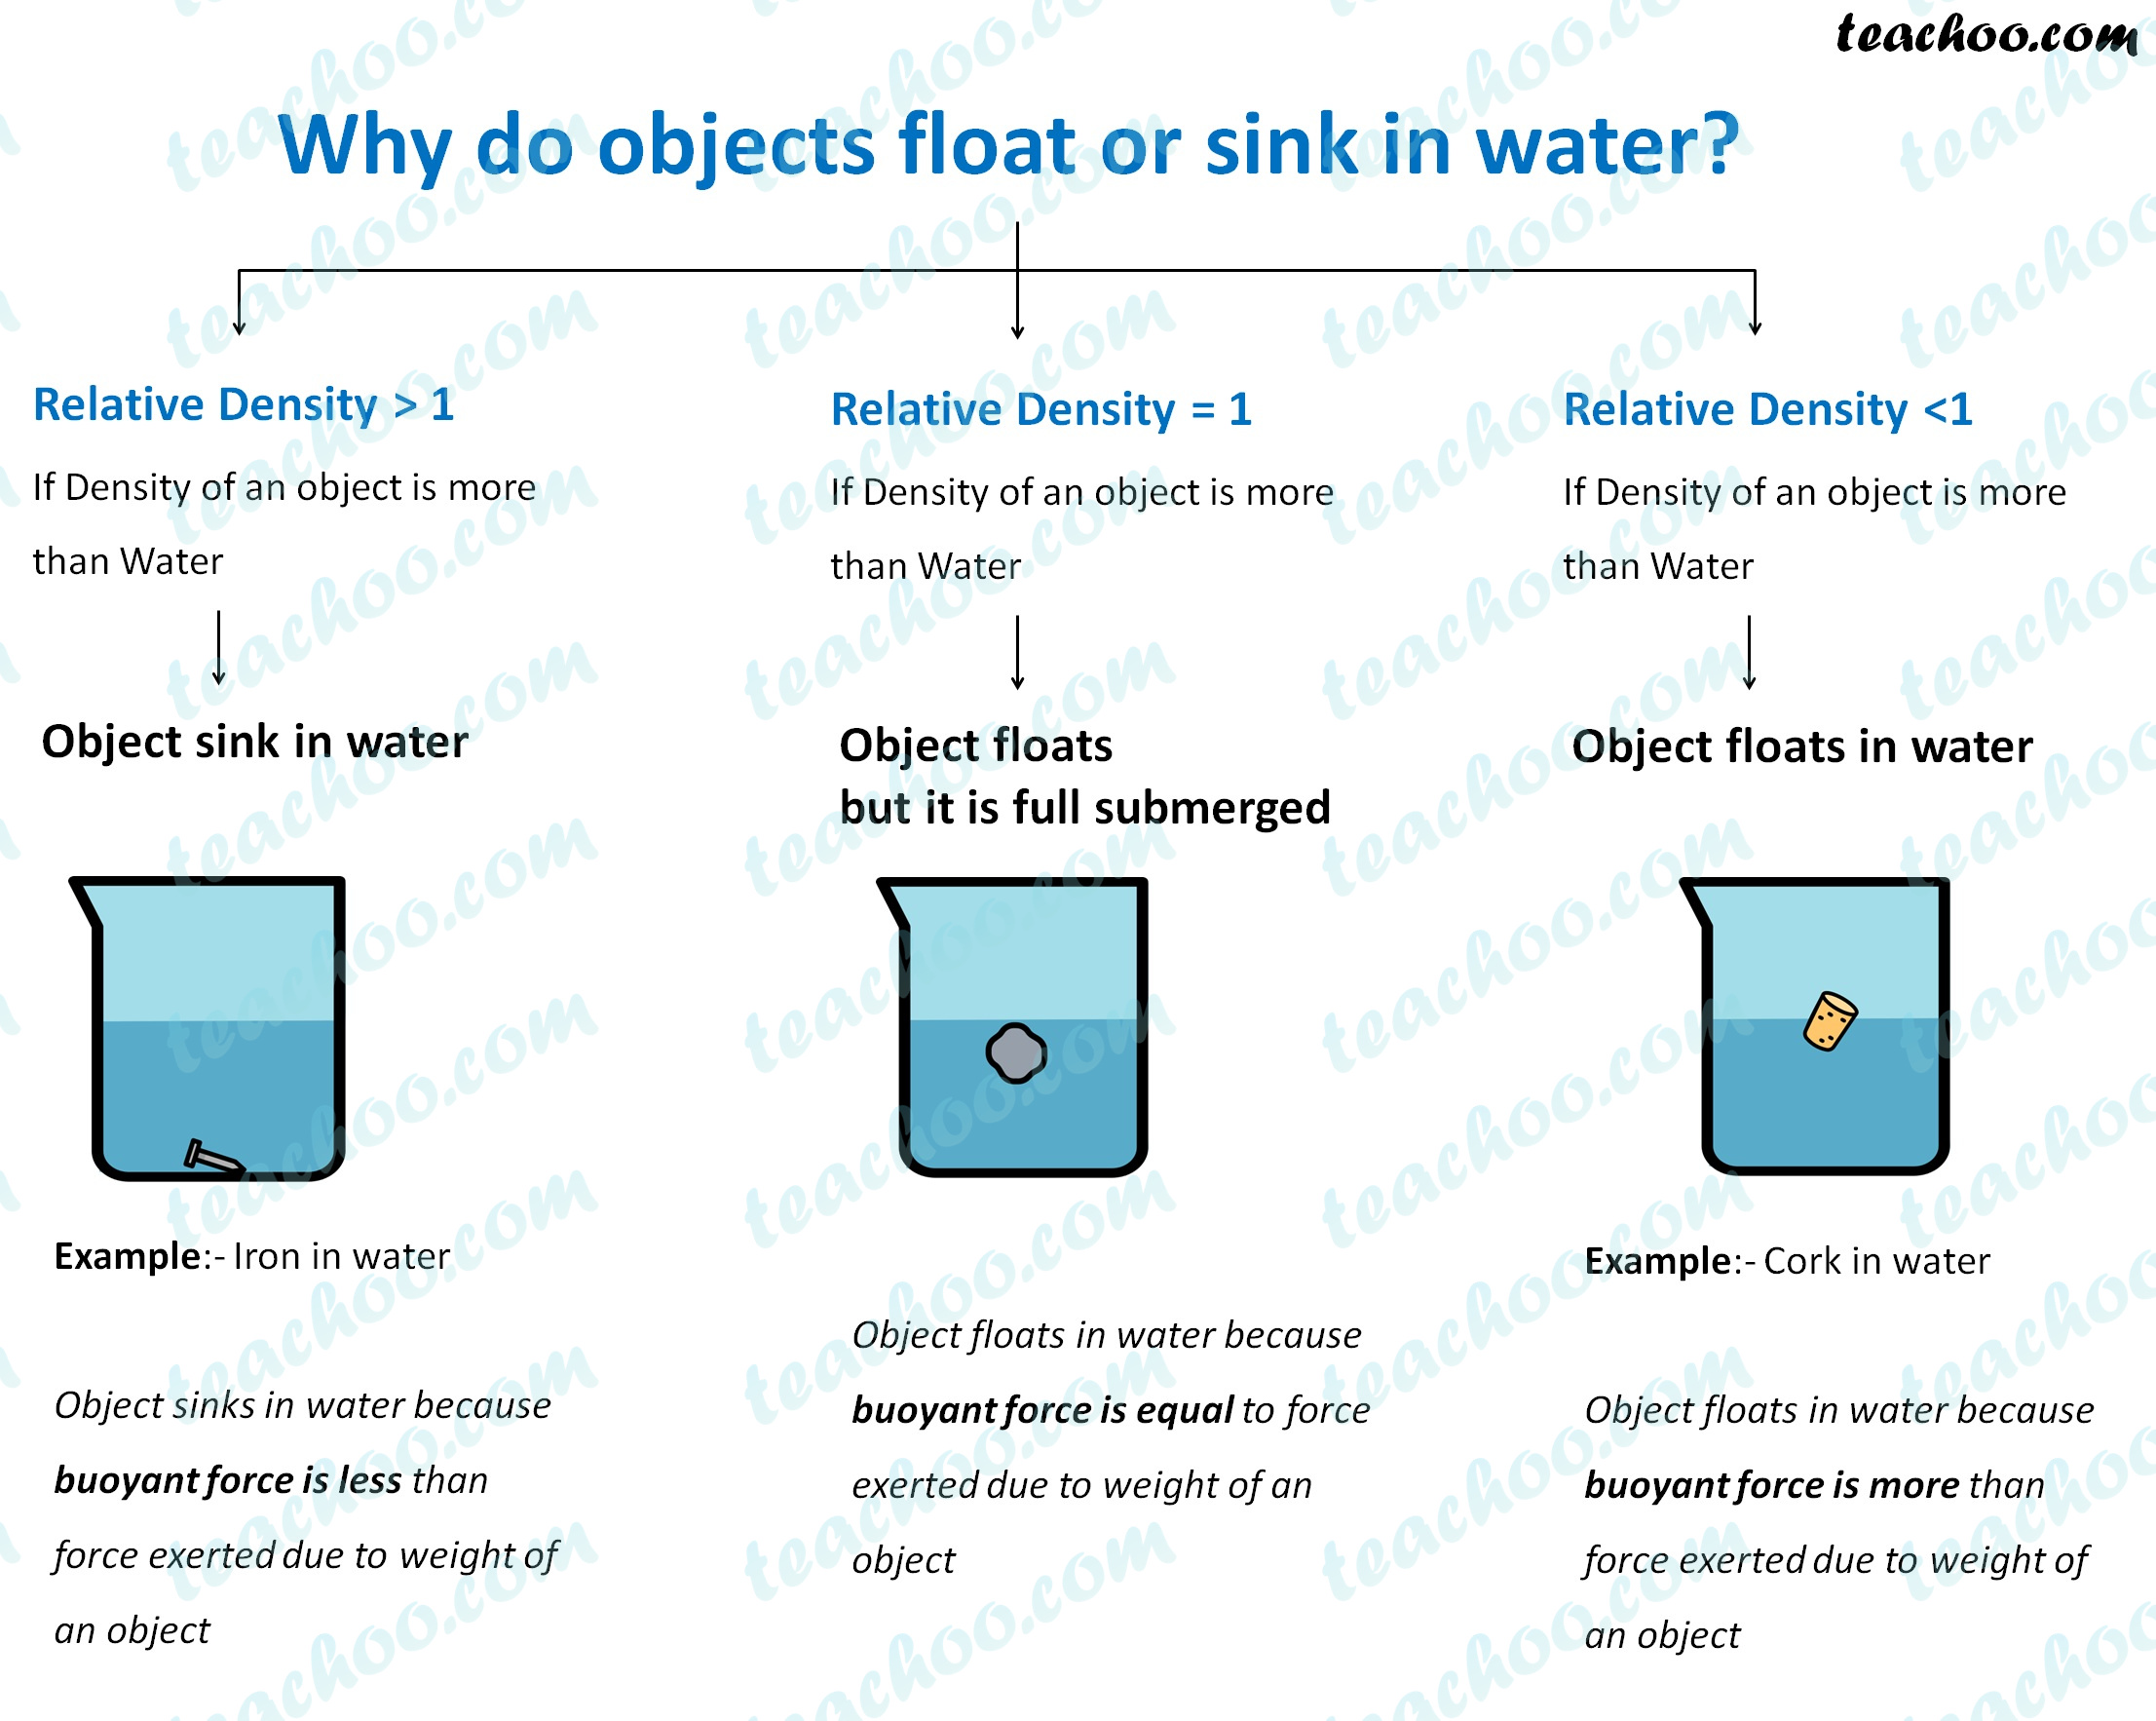 why-do-objects-float-or-sink-in-water.jpg